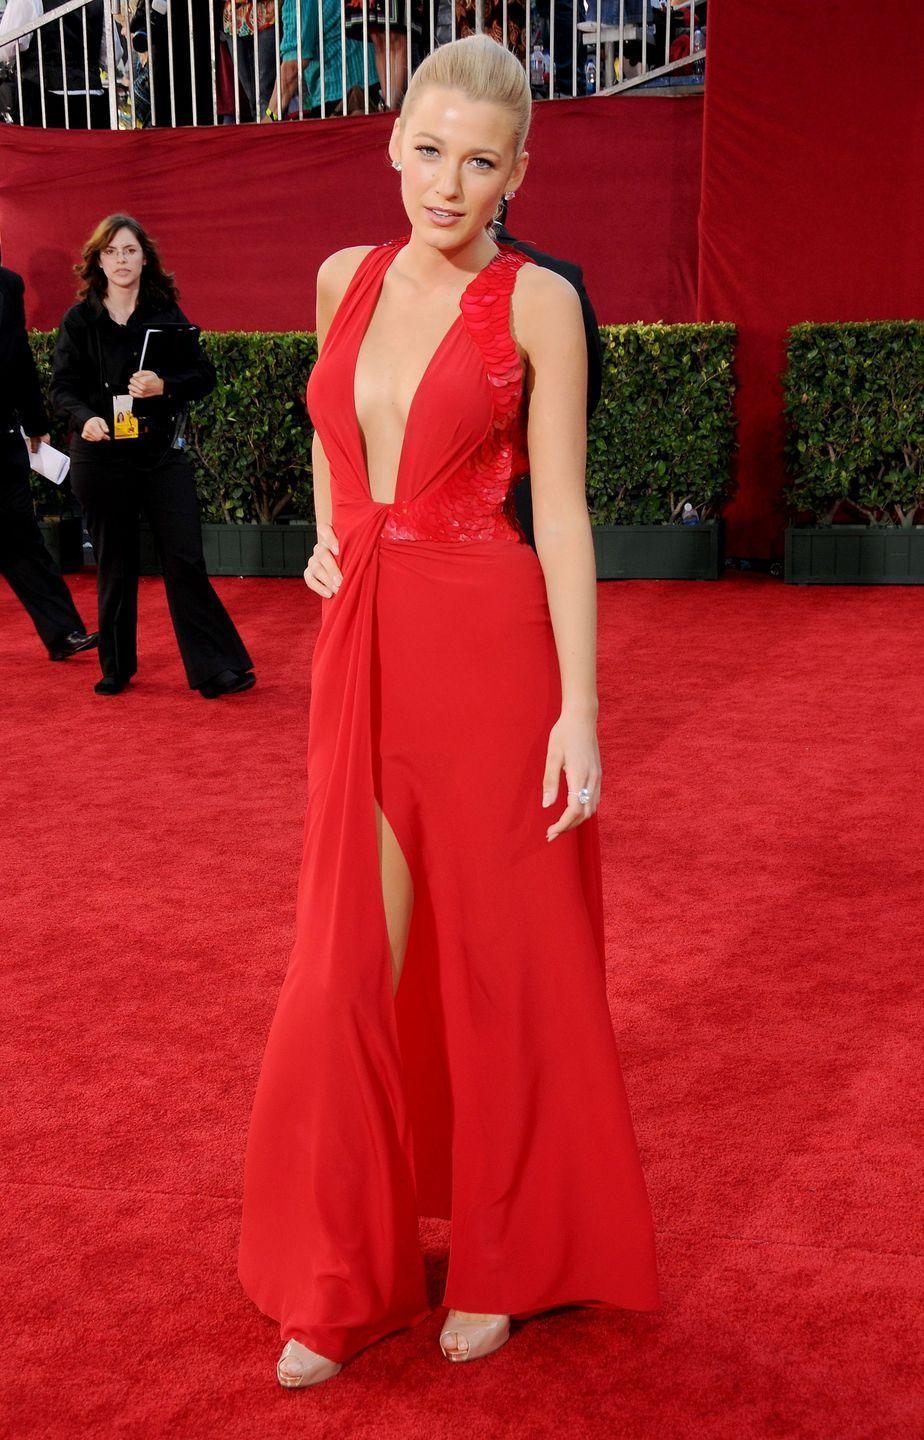 <p>Lively wore this red dress with a deep plunging neckline on the Emmy red carpet in 2009.</p>